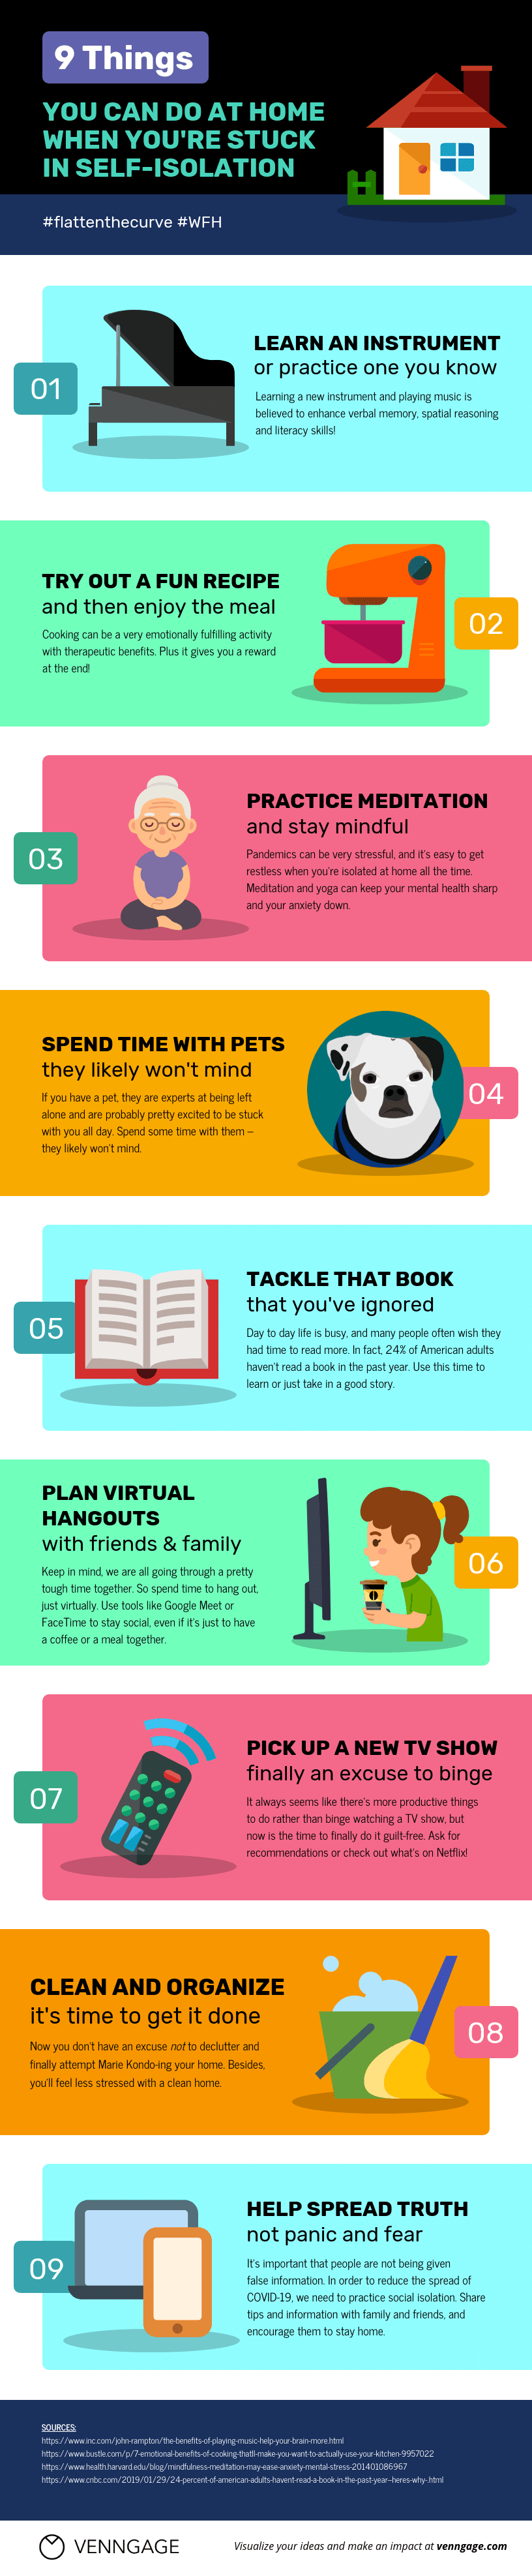 9 Ways to Manage Self-Isolation Infographic Template